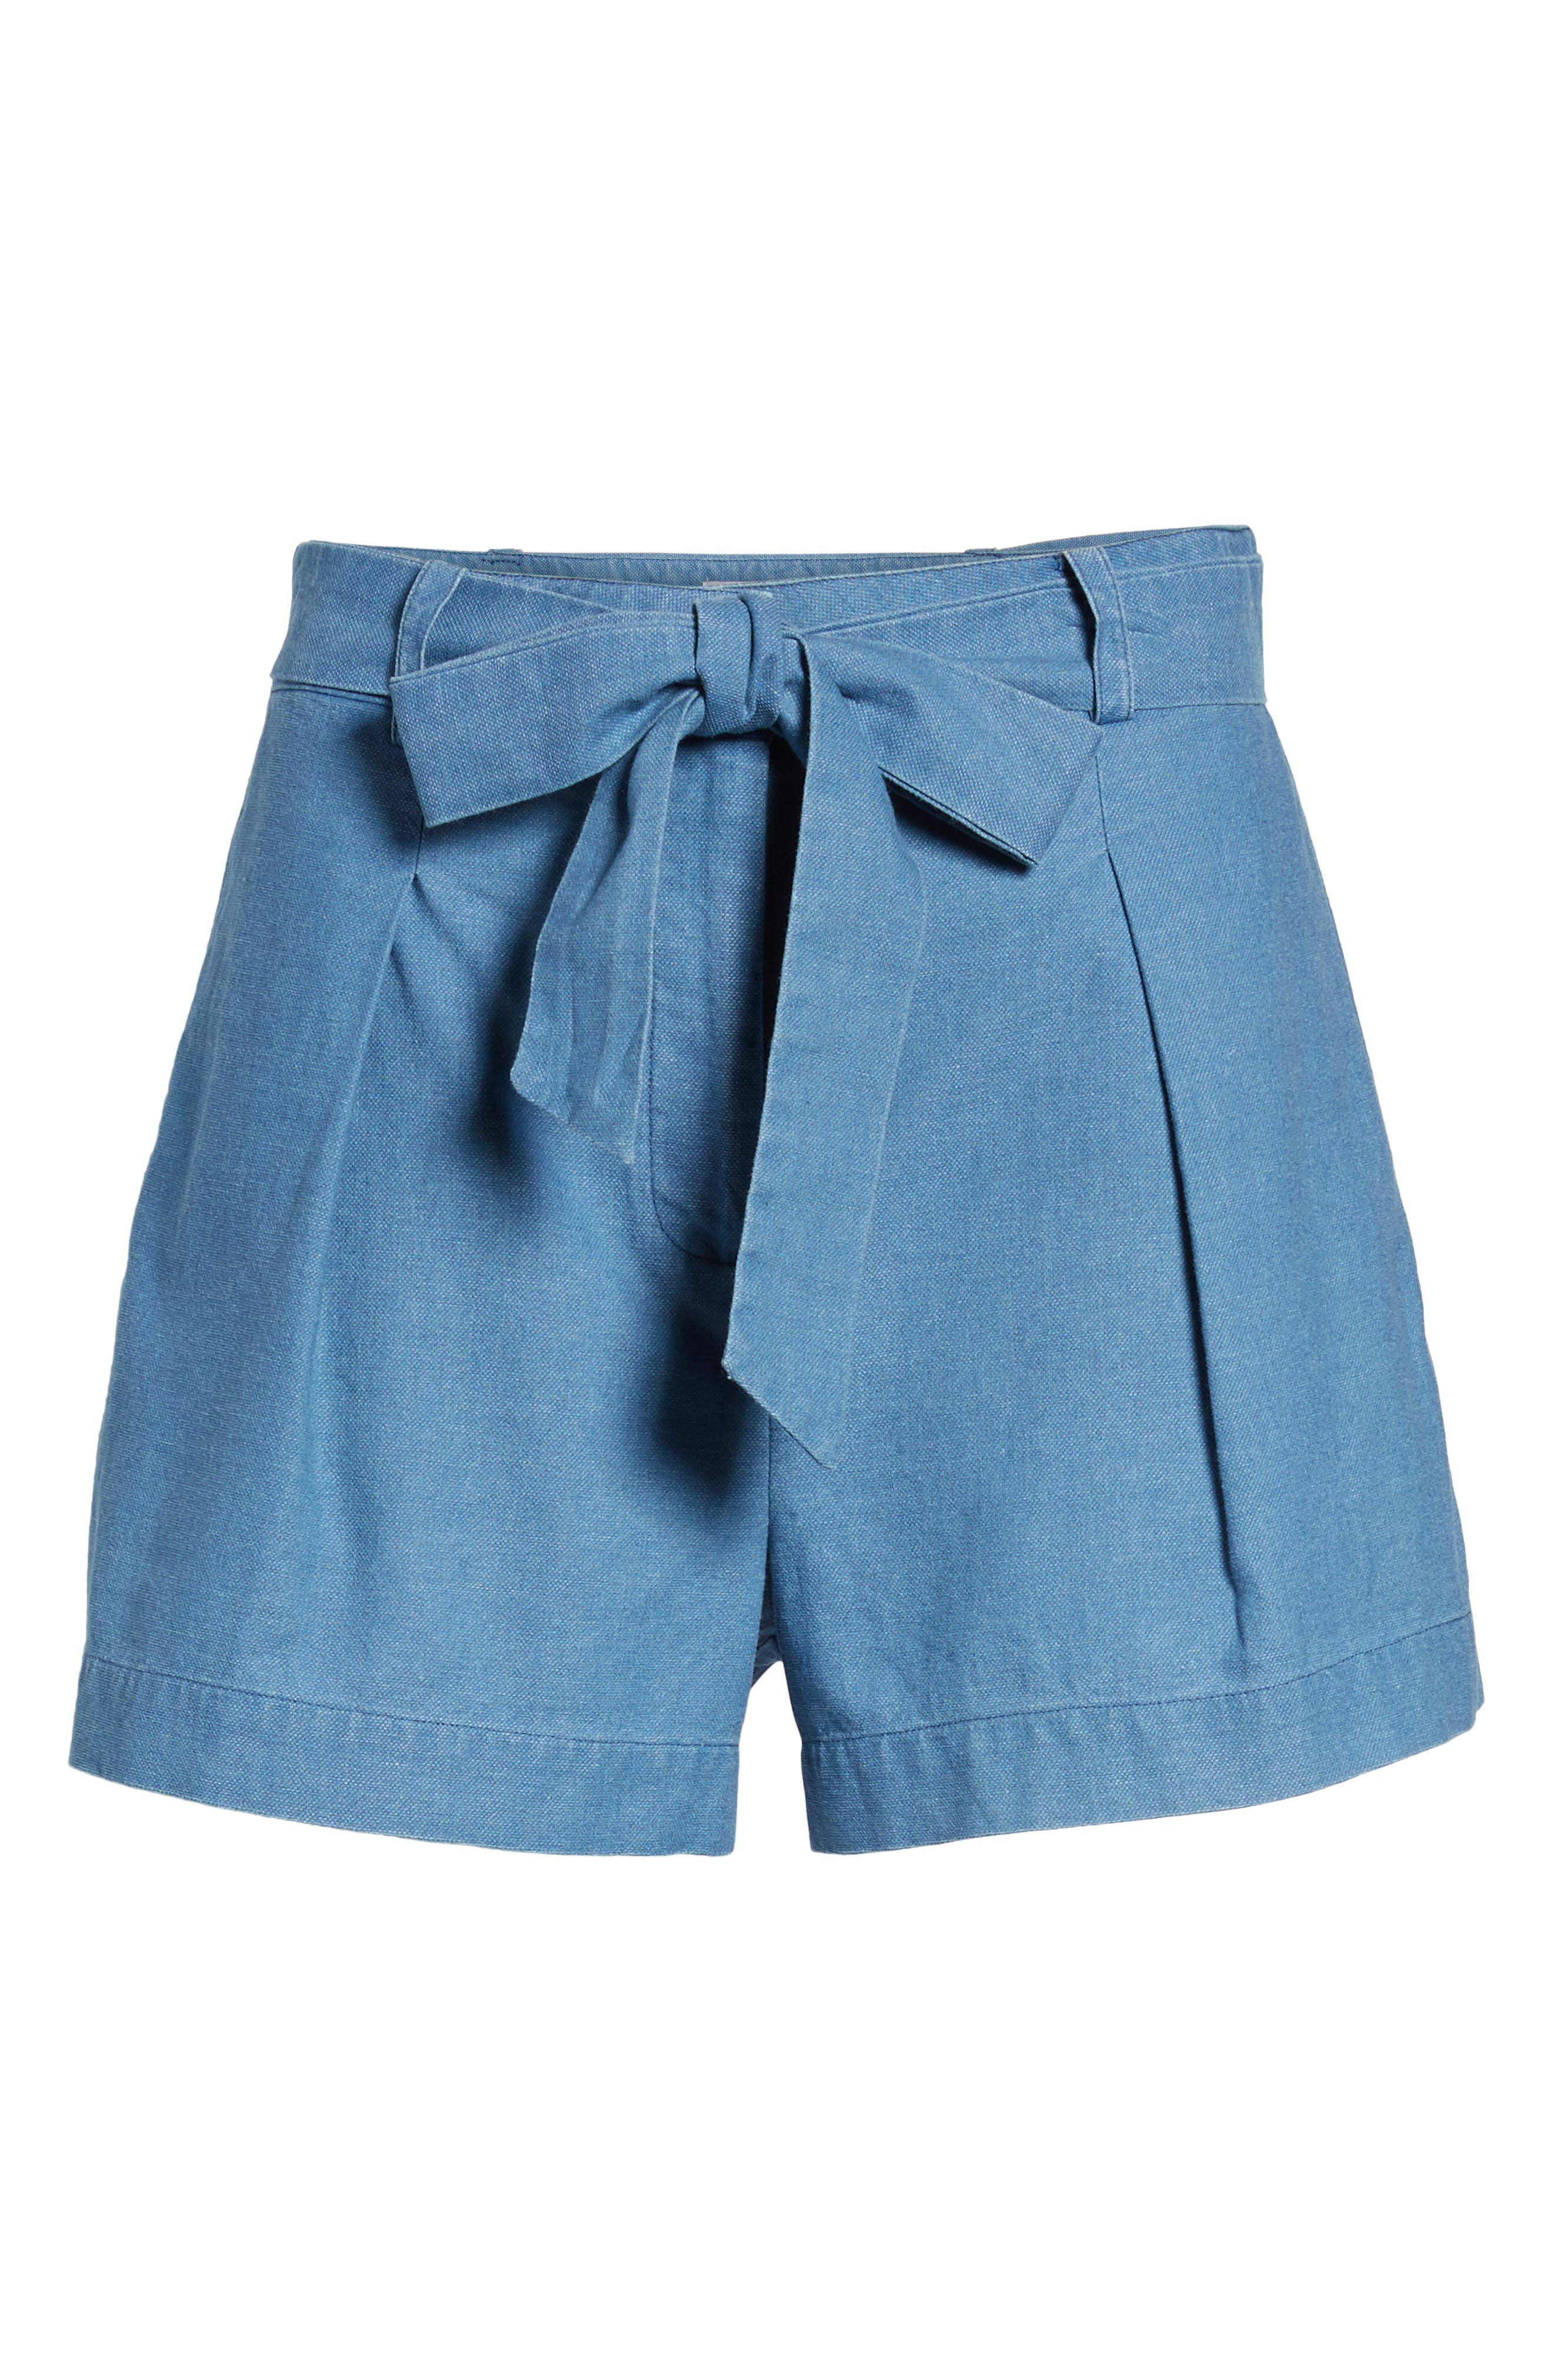 Tie Front Chambray Shorts,                             Alternate thumbnail 6, color,                             400